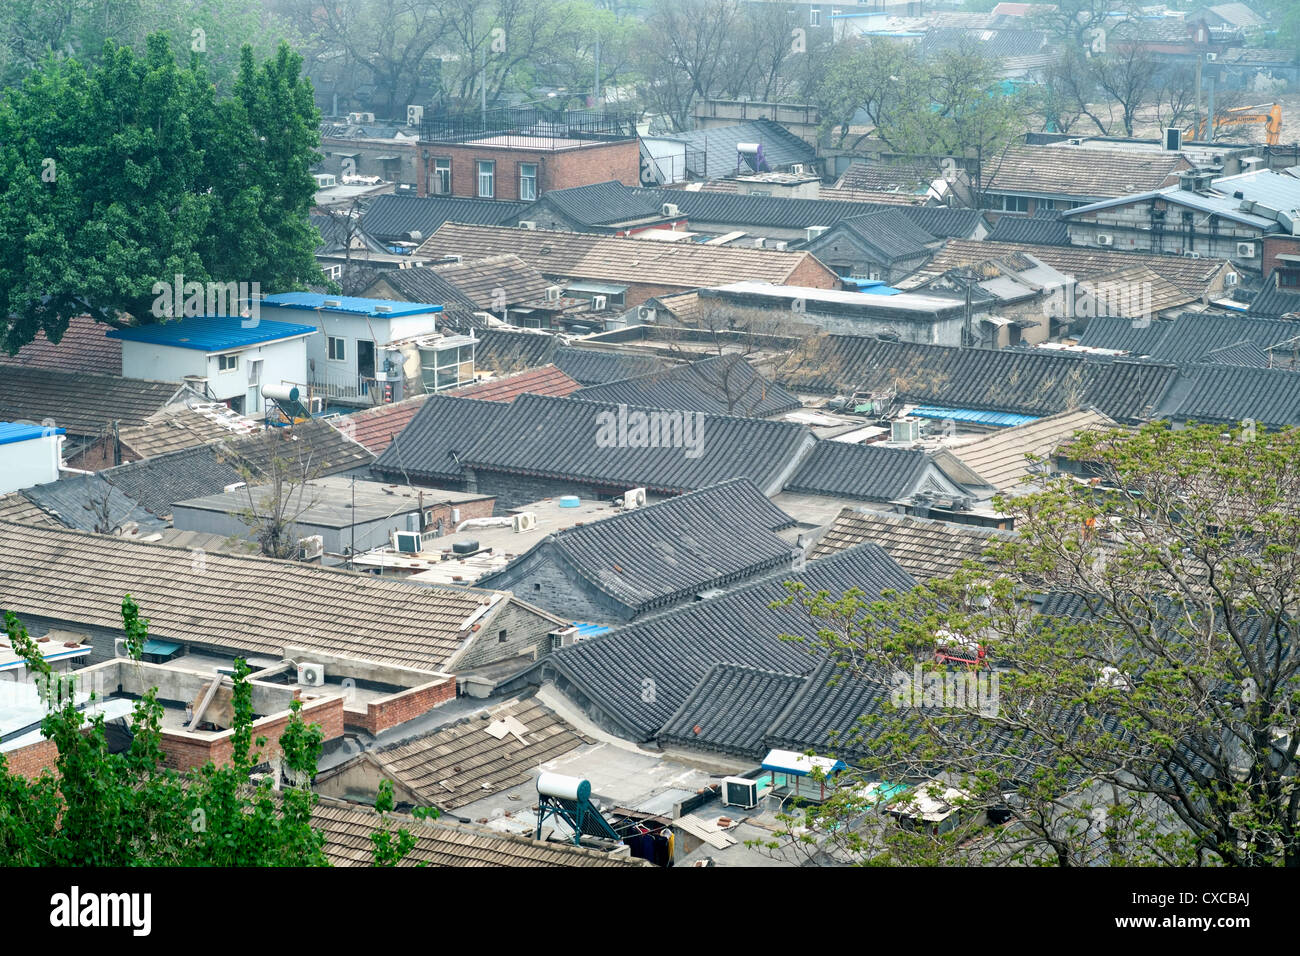 View of rooftops of old houses in area with many hutongs or lanes in central Beijing China - Stock Image